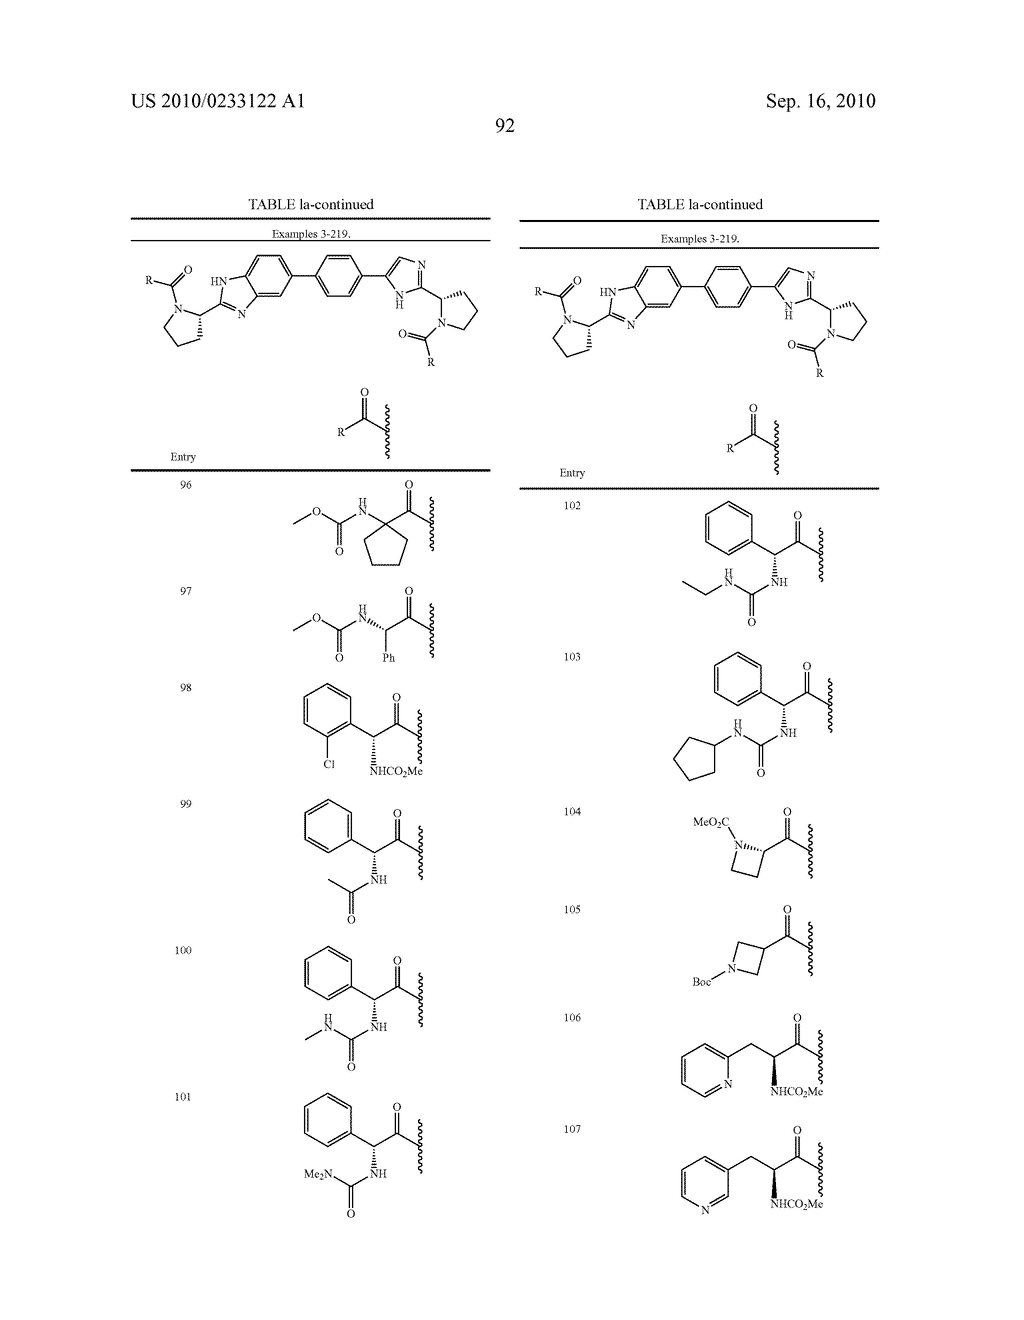 NOVEL BENZIMIDAZOLE DERIVATIVES - diagram, schematic, and image 93